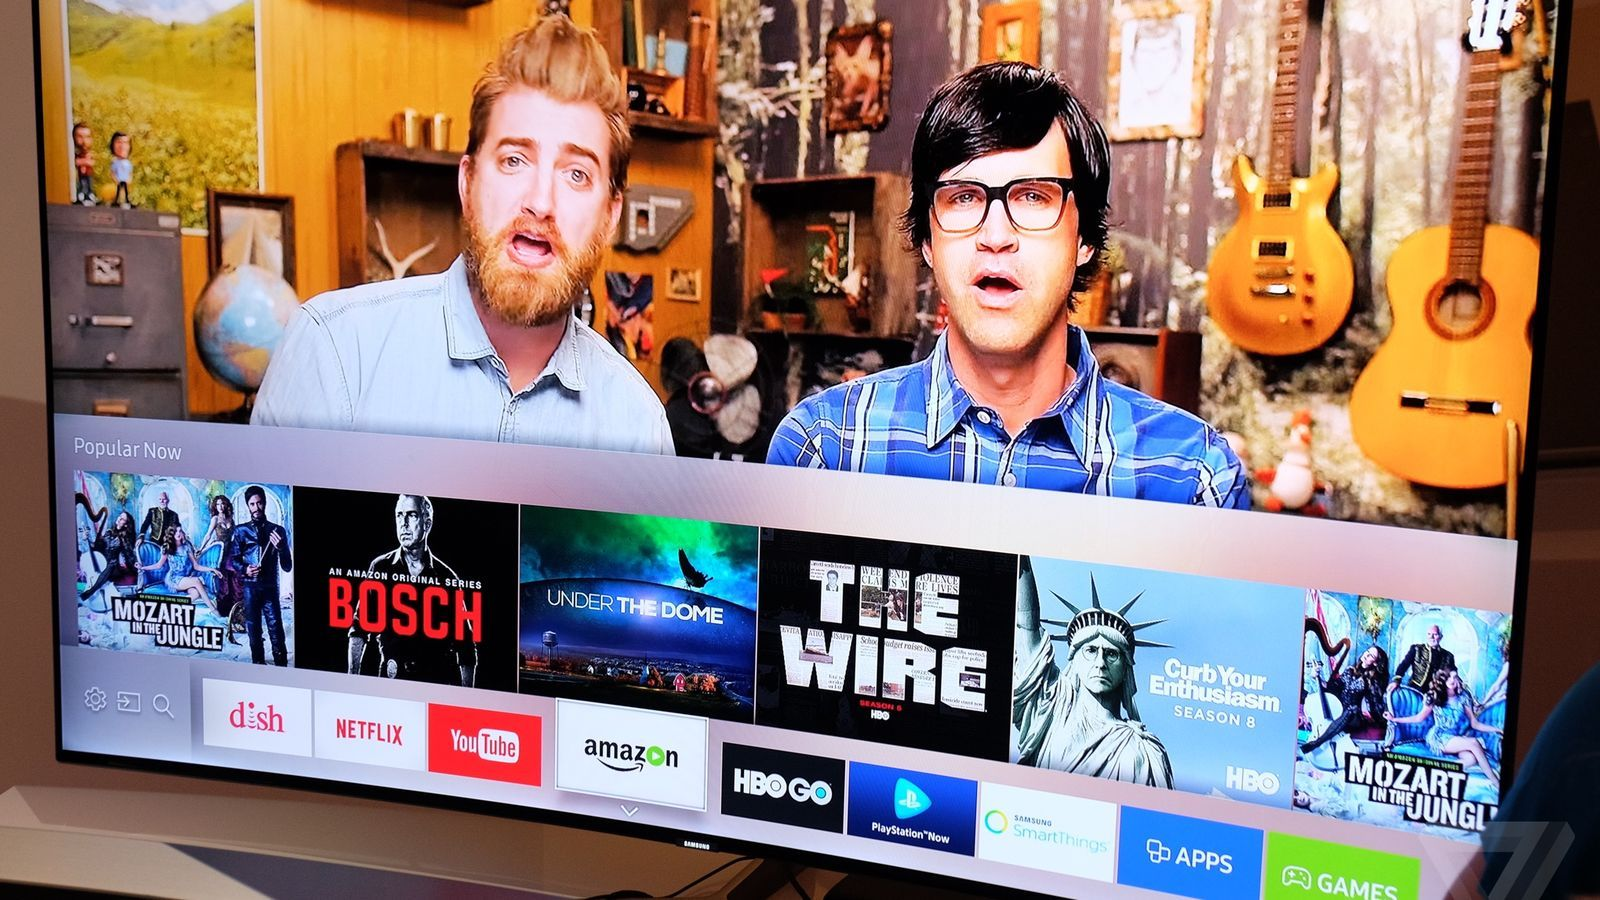 Samsung is adding new obtrusive ads to your old smart TV